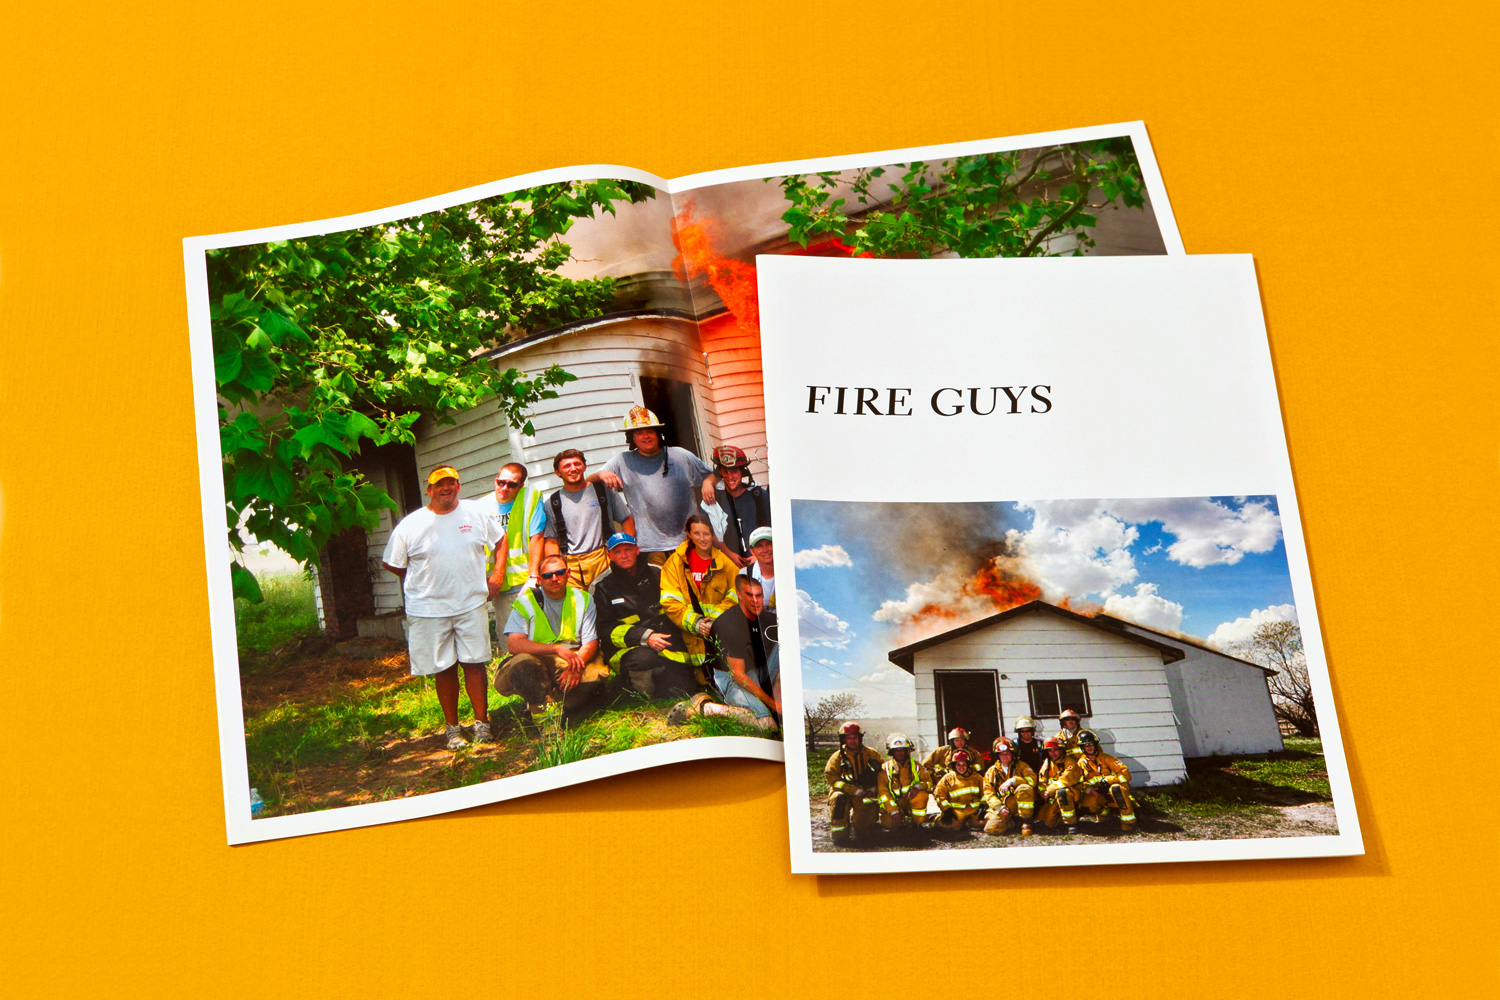 files/fireguys/FG-1.jpg